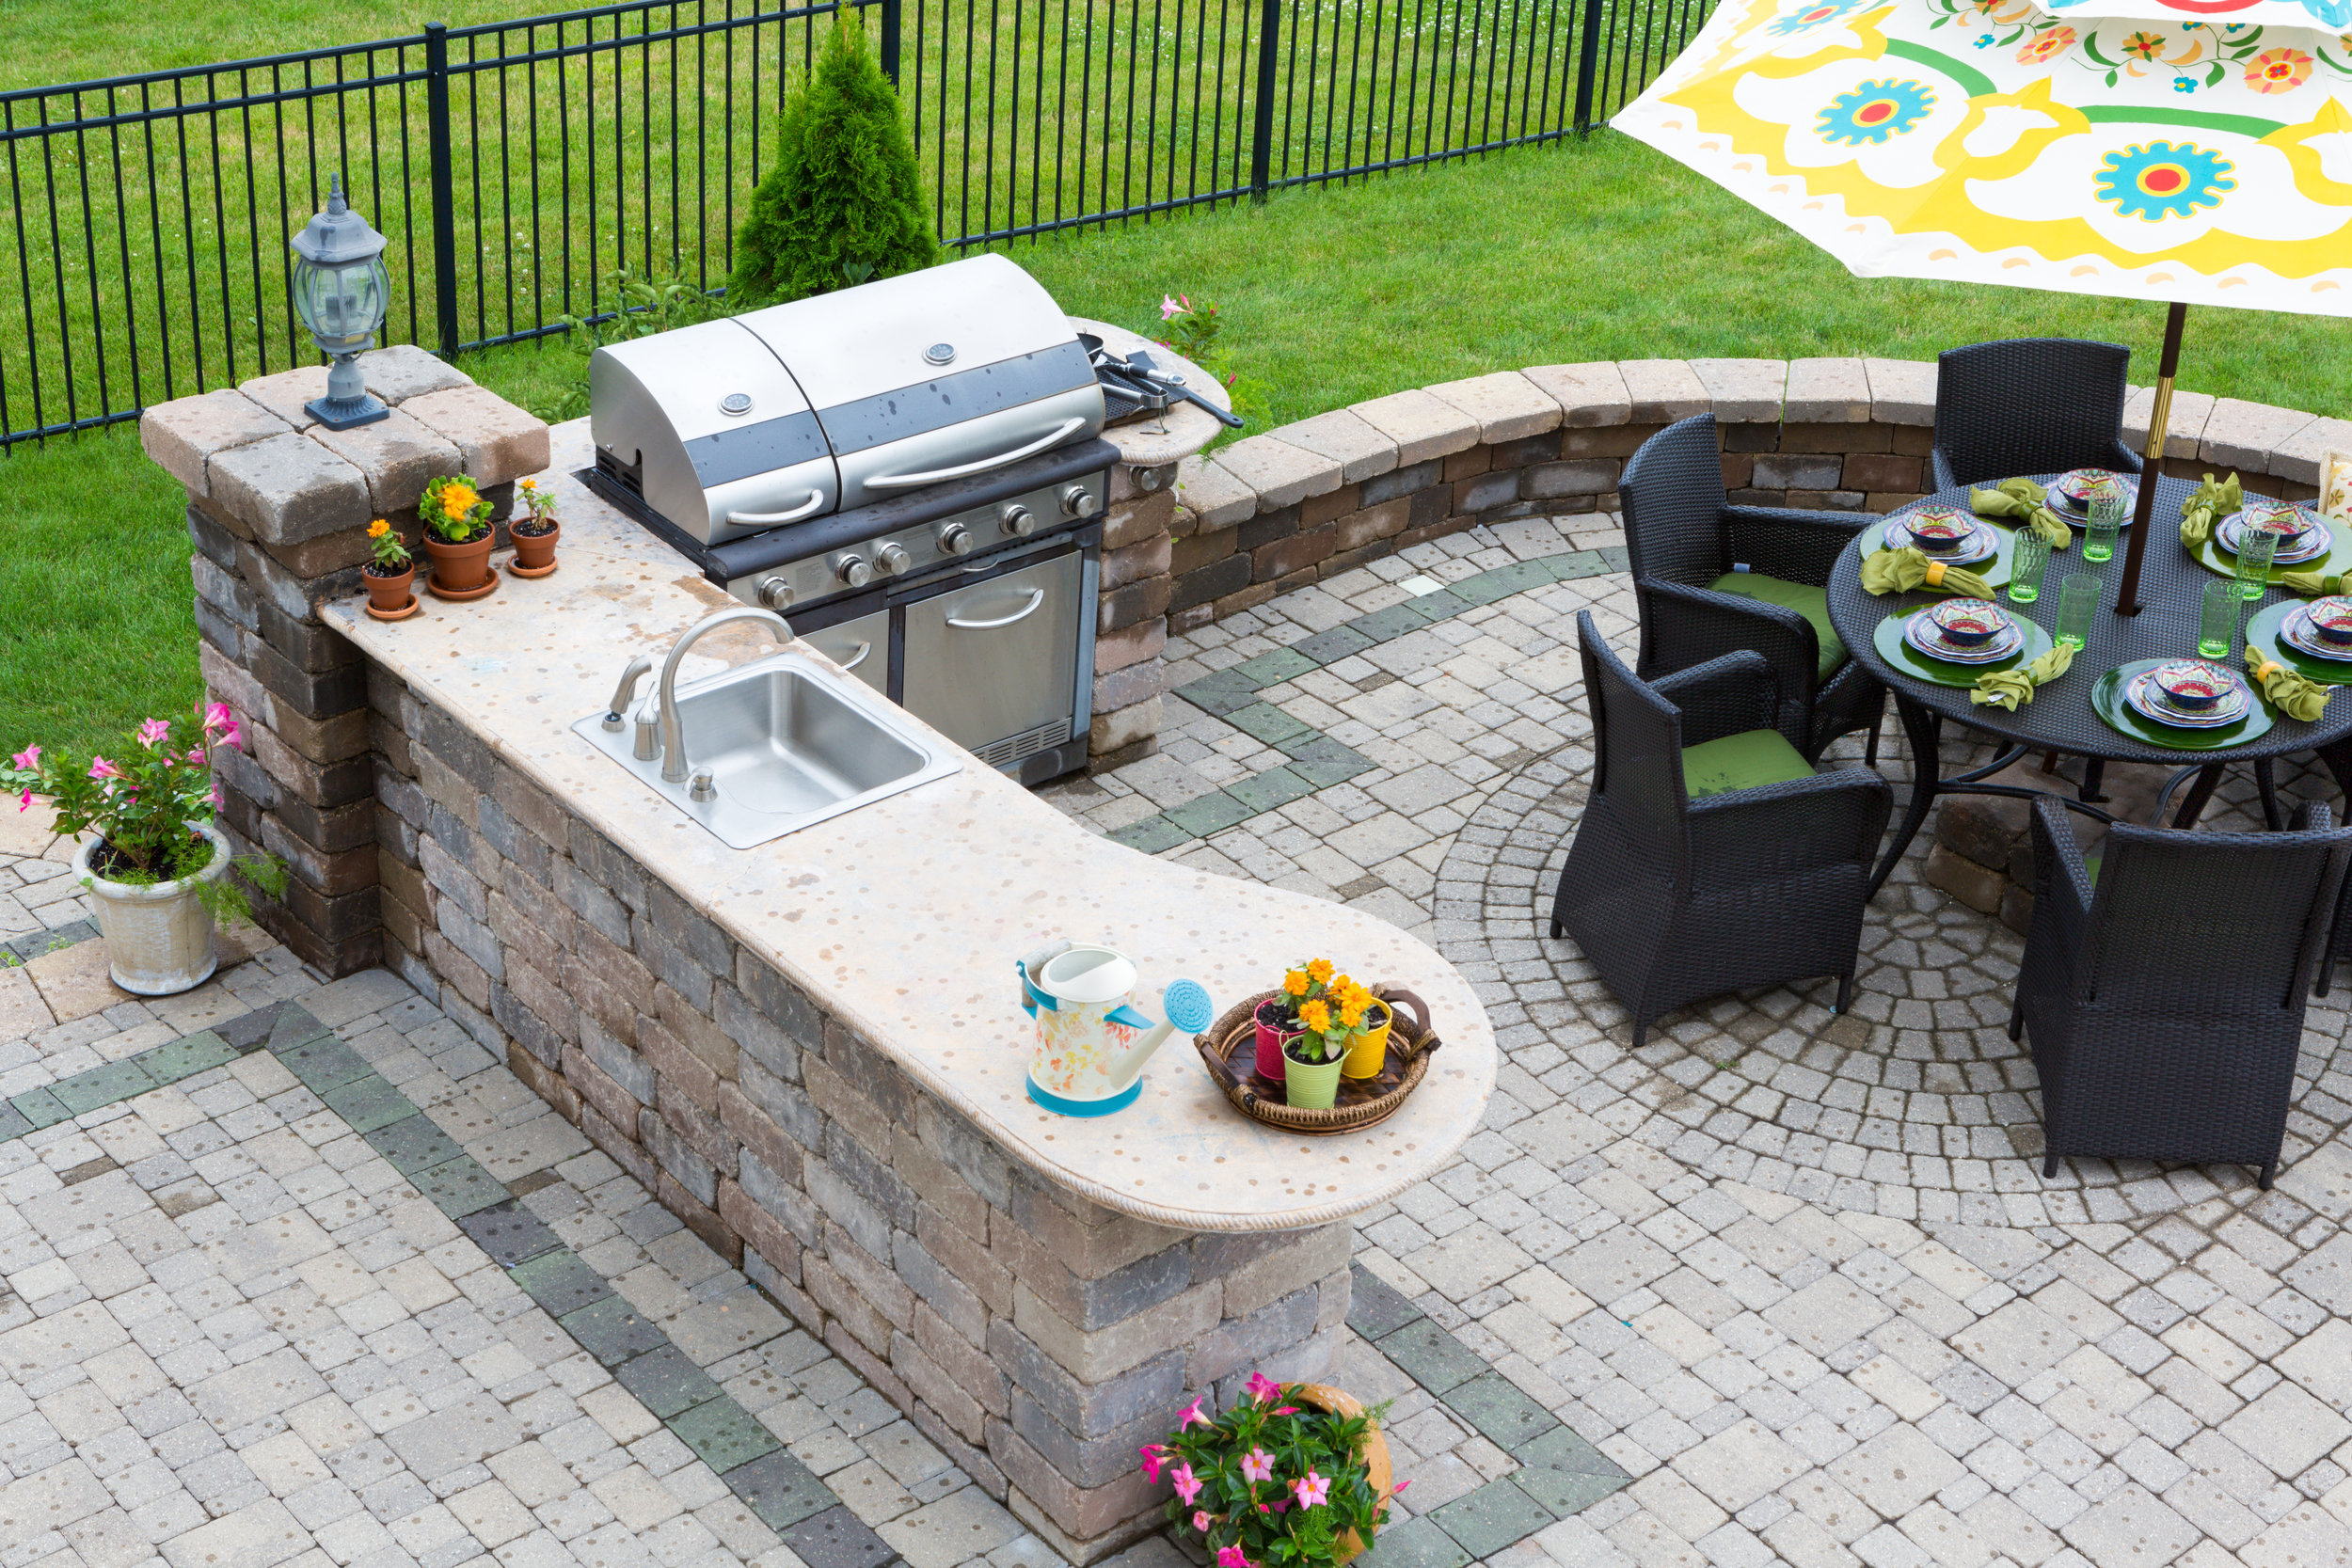 5 Tips From Our Garden Center for Adding Color to Your Bergen County, NJ, Patio